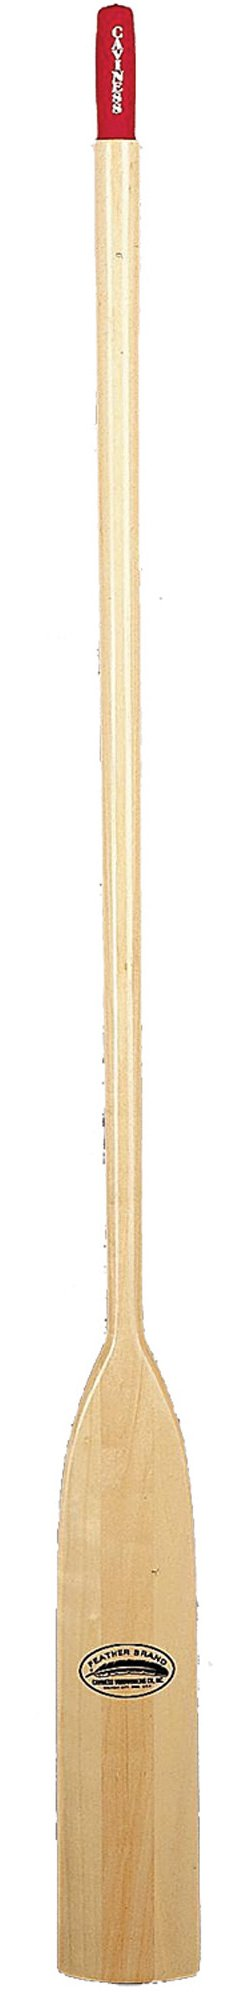 Caviness Lam 6 ft Oar with Grip